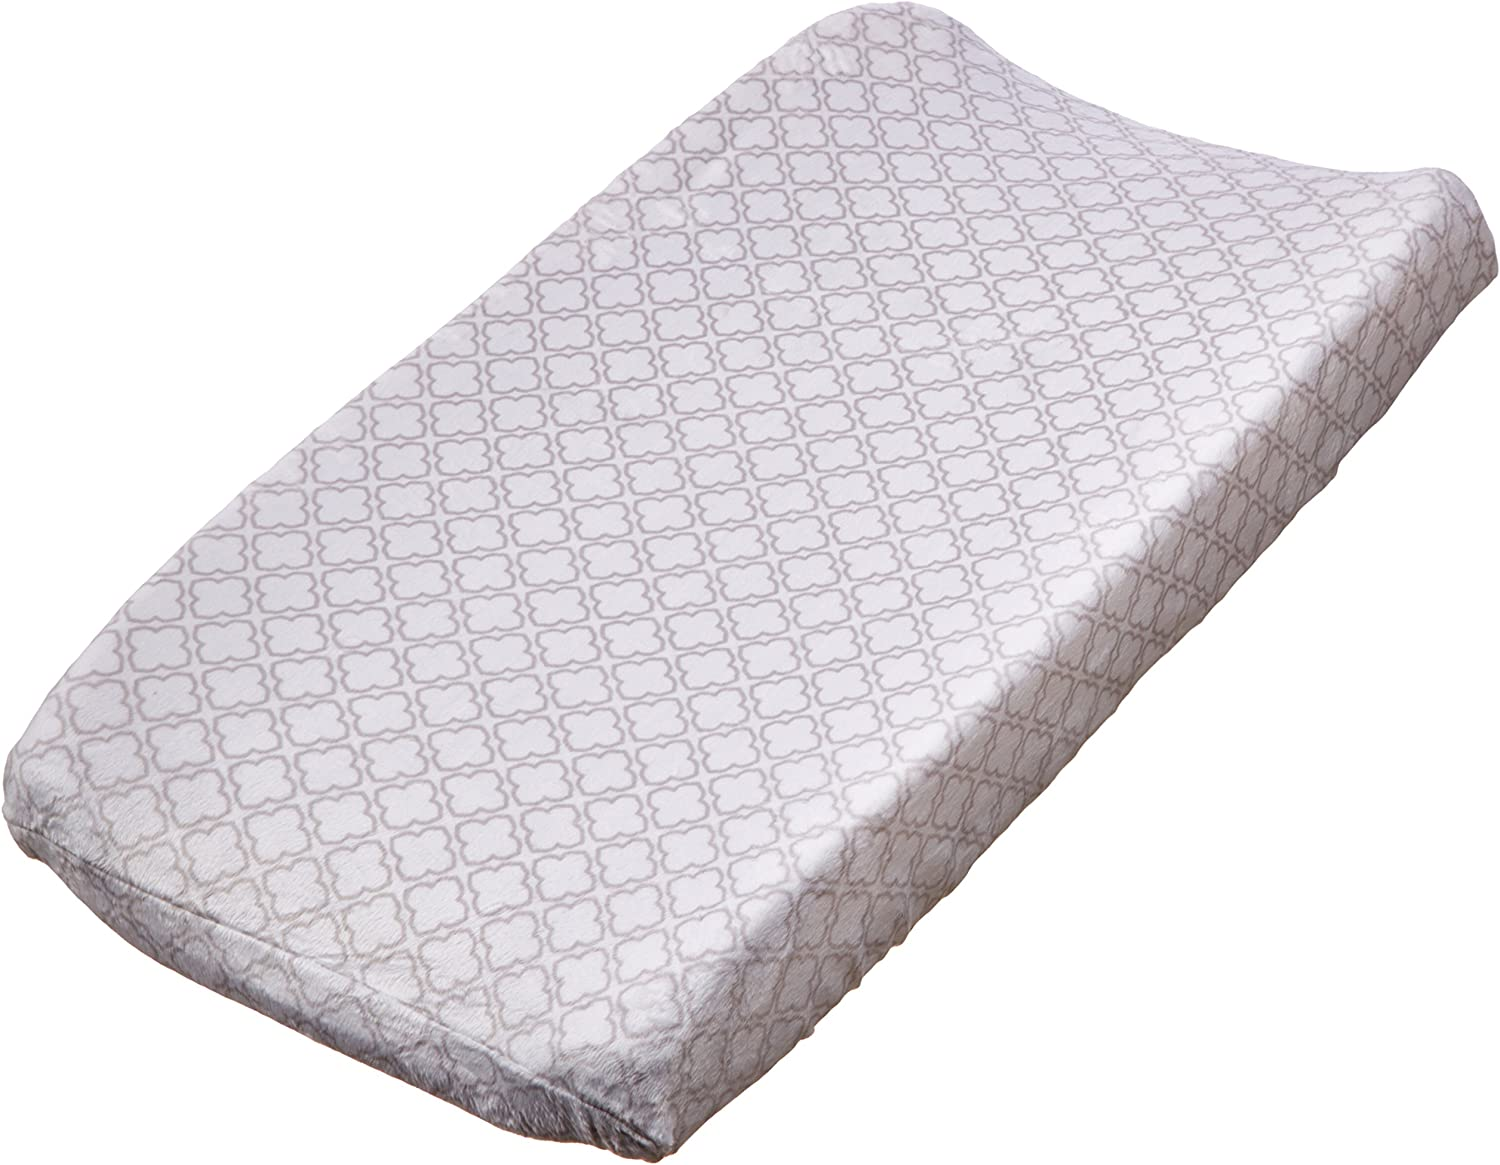 Carters Changing Pad Cover Grey Trellis Print One Size